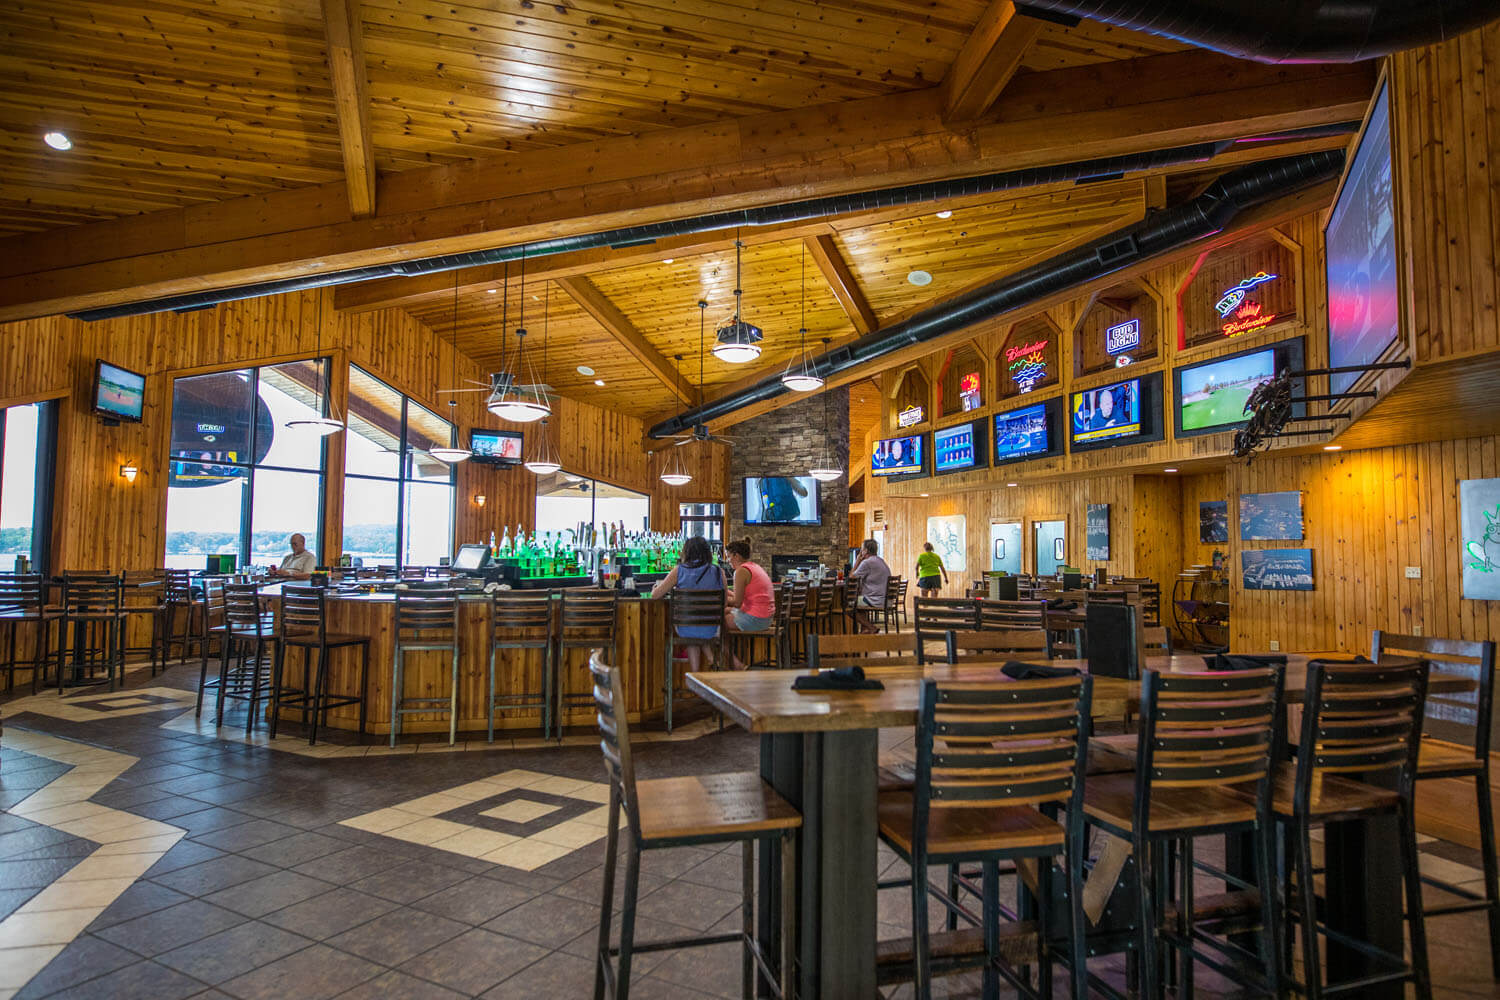 Indoor dining and bar seating at Toad Island Bar & Grill Camden on the Lake